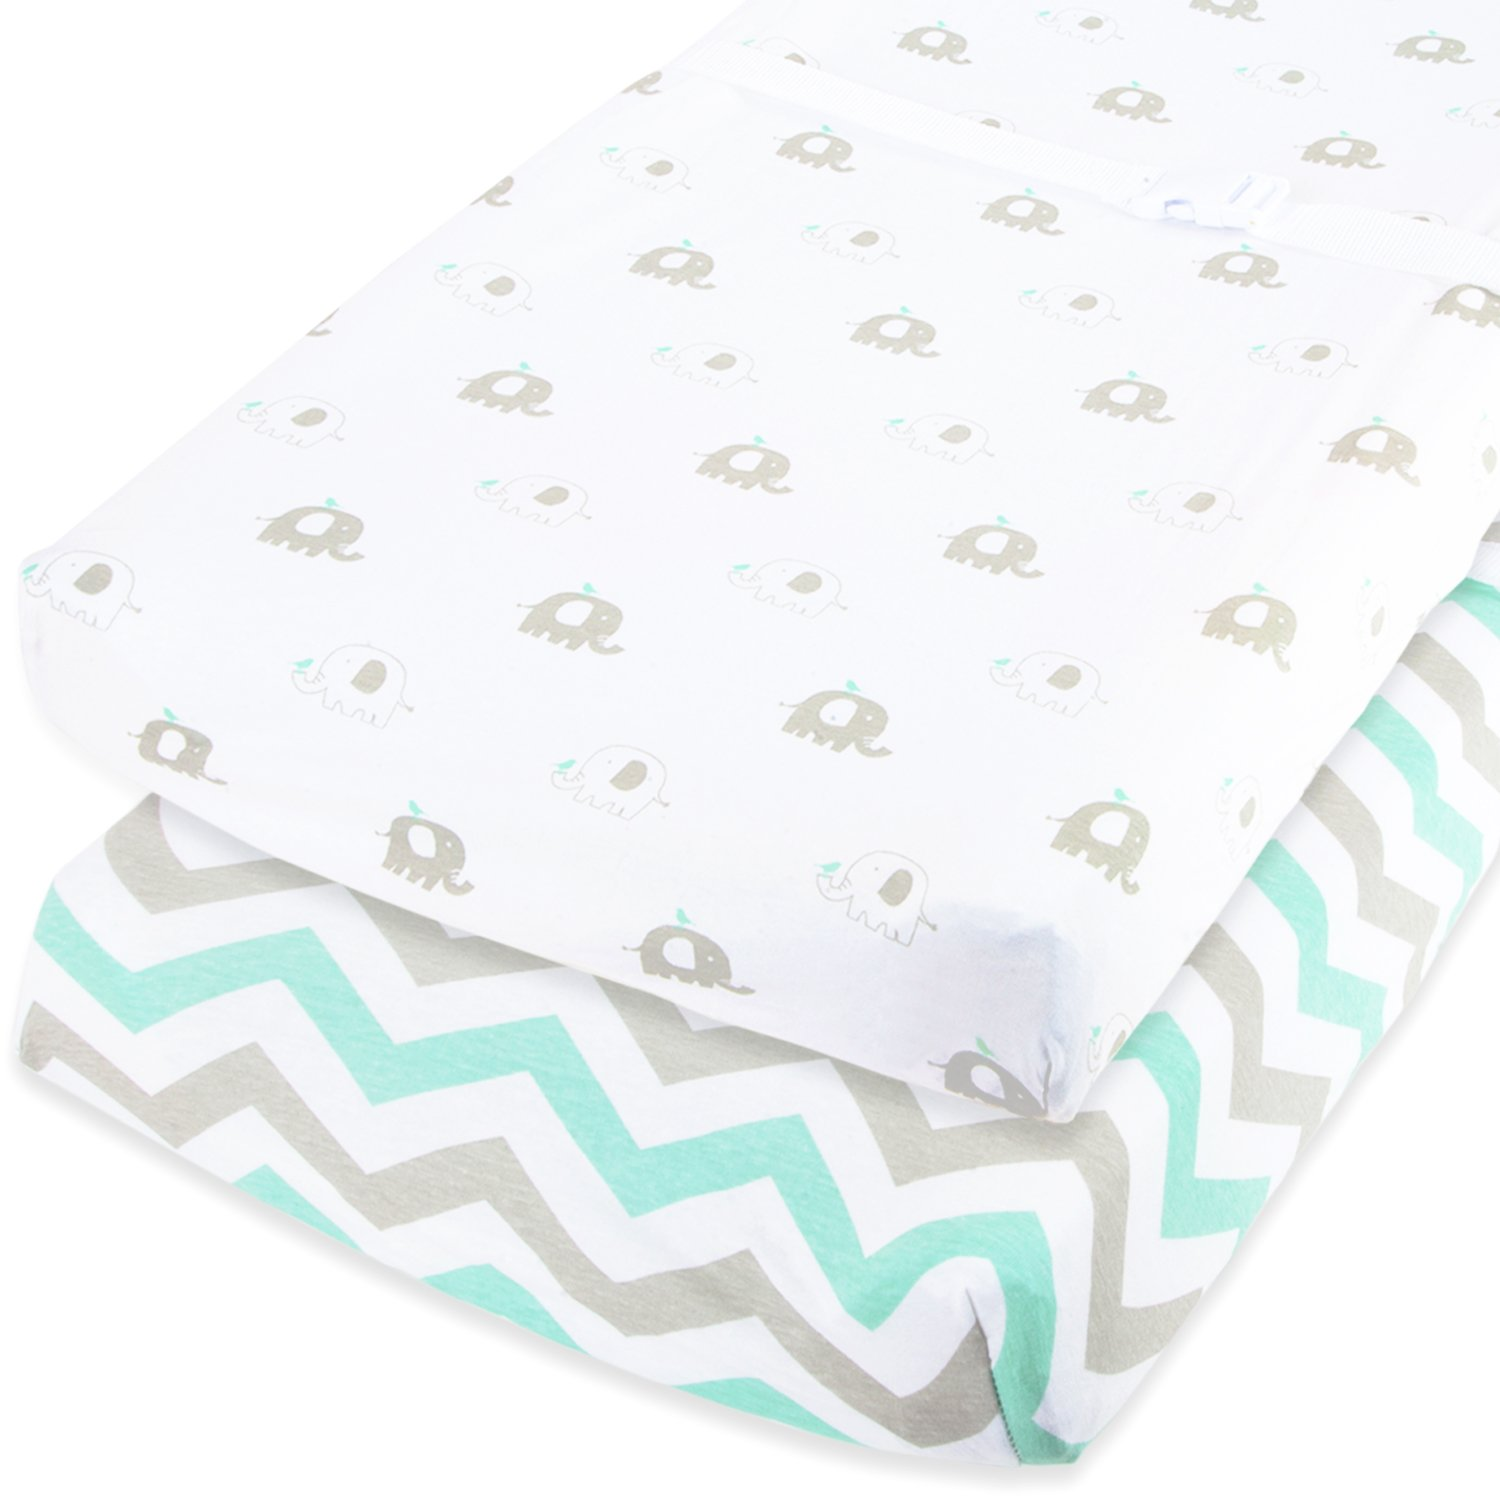 Cuddly Cubs Baby Changing Table Pad Cover Set For Boy & Girl | Soft & Breathable